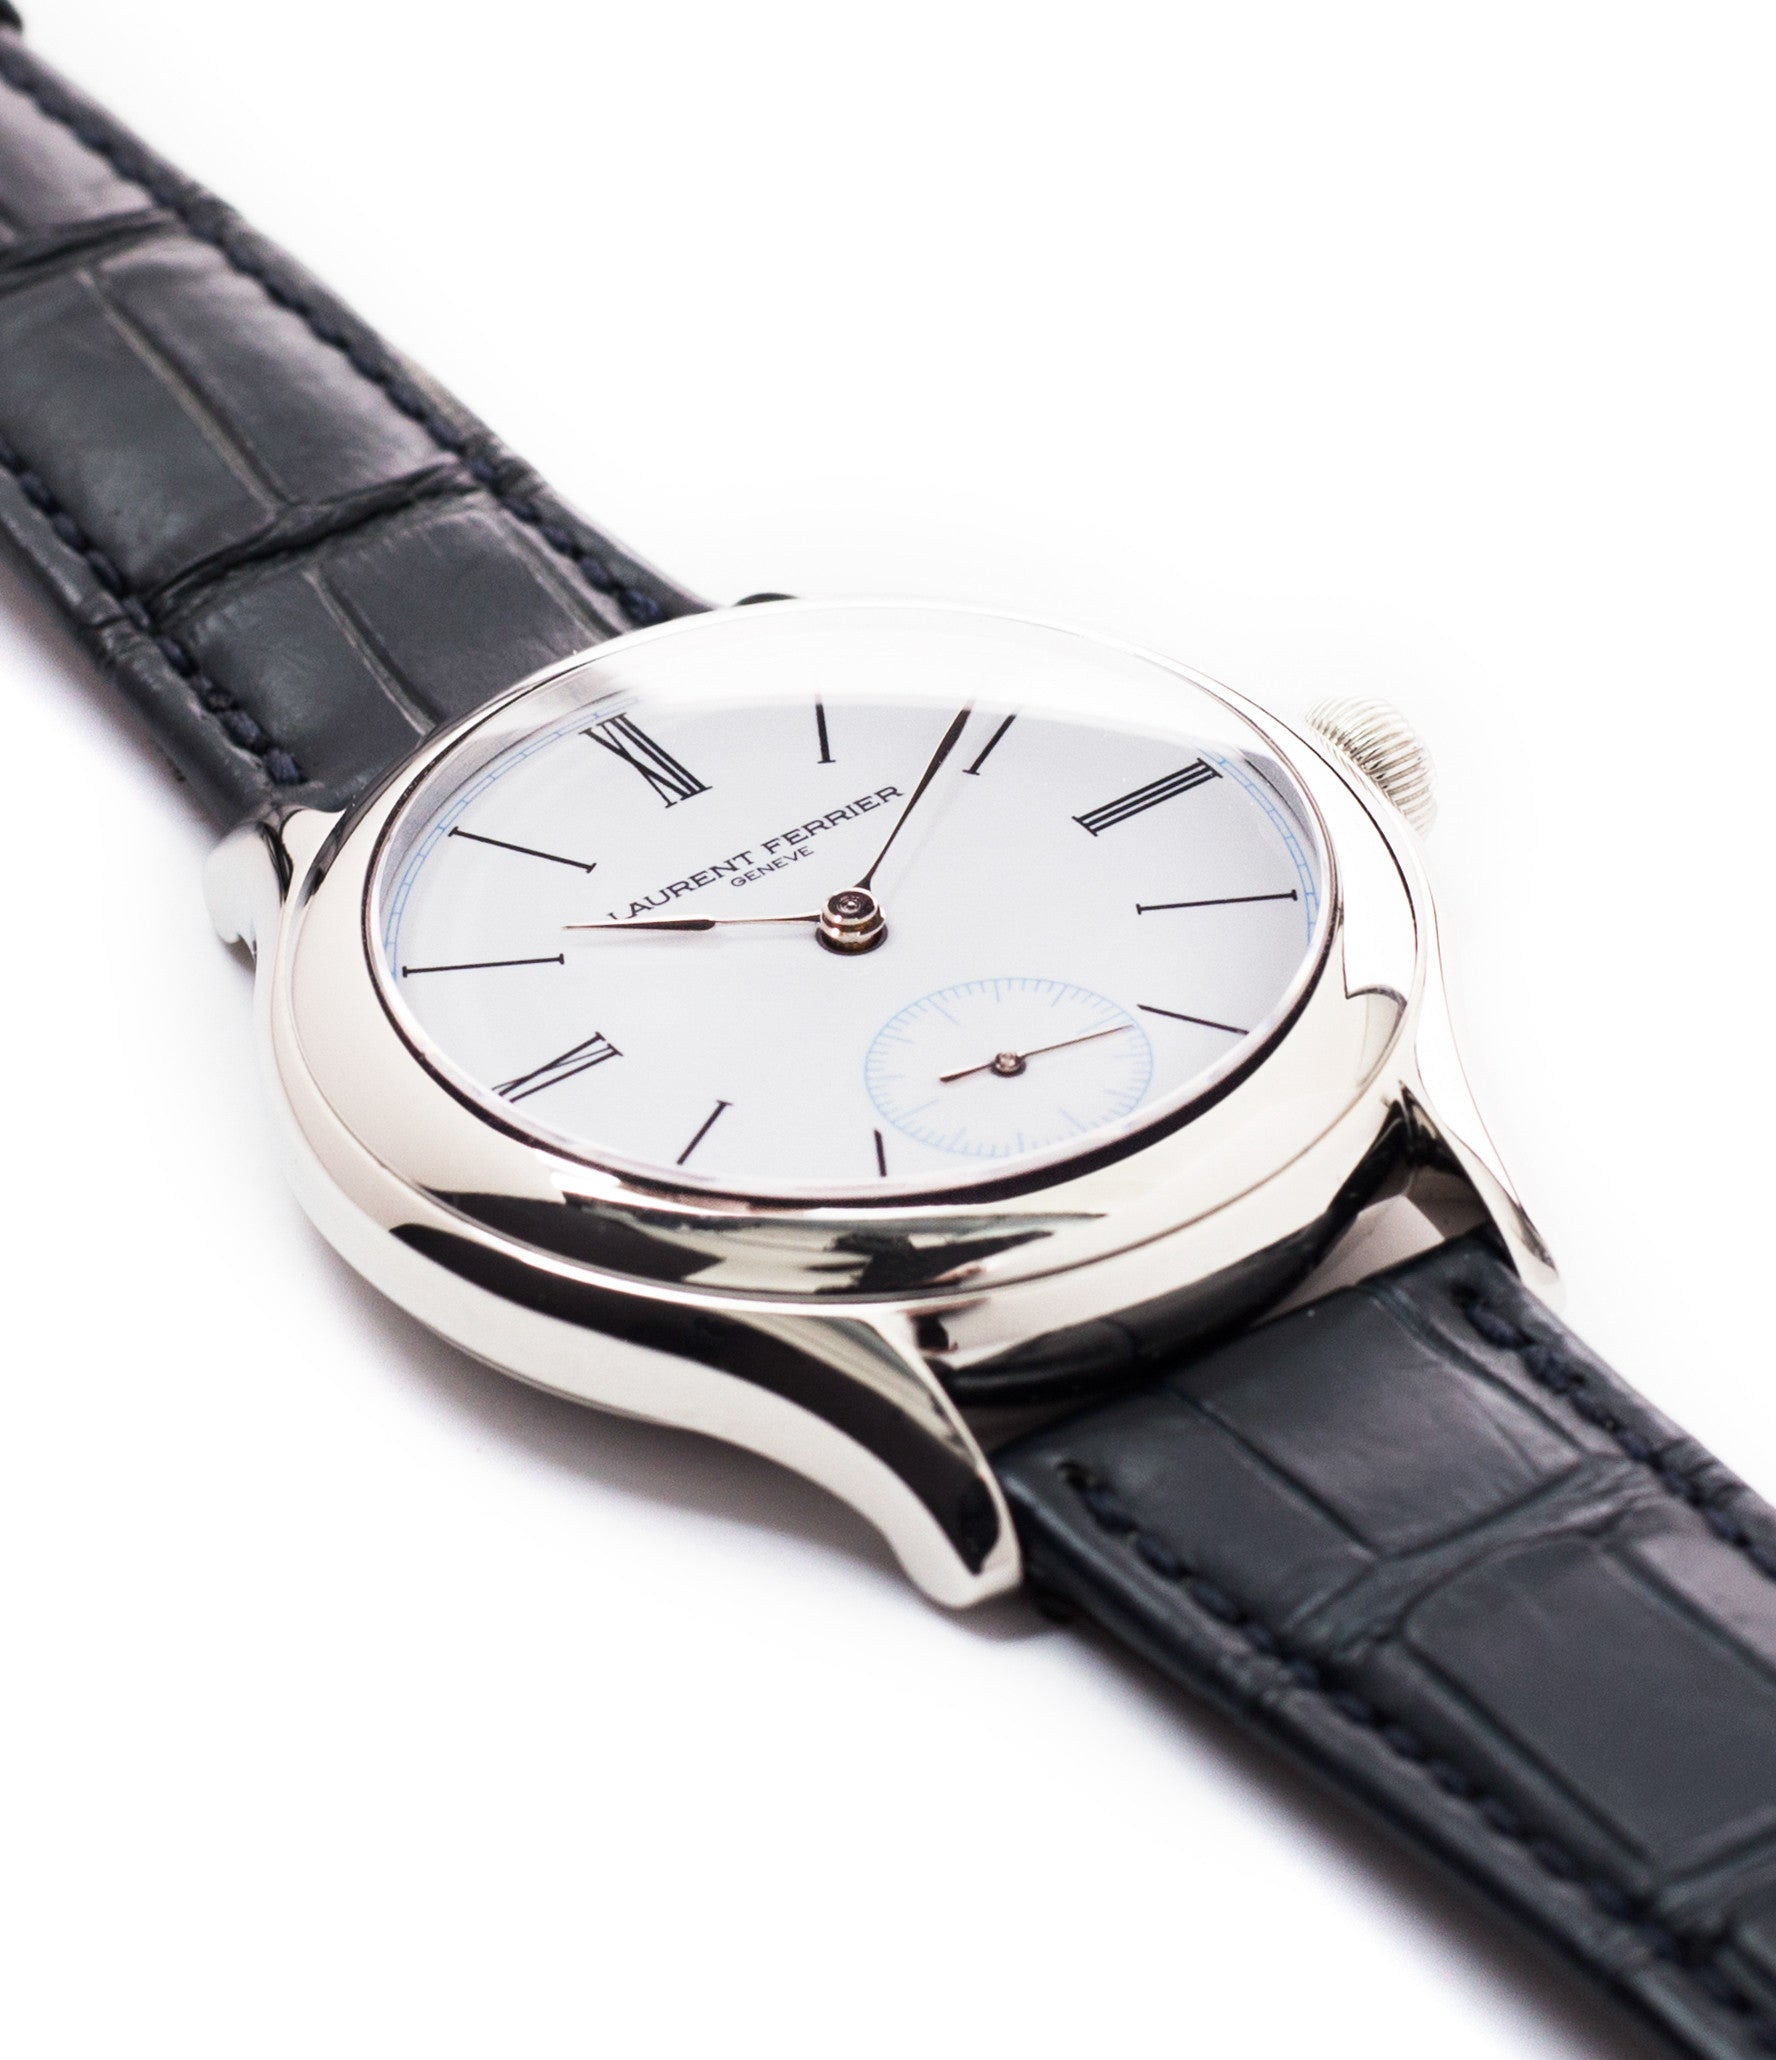 platinum Laurent Ferrier Galet Micro-rotor LCF006 enamel dial limited edition watch for sale online at A Collected Man London specialist independent watchmakers